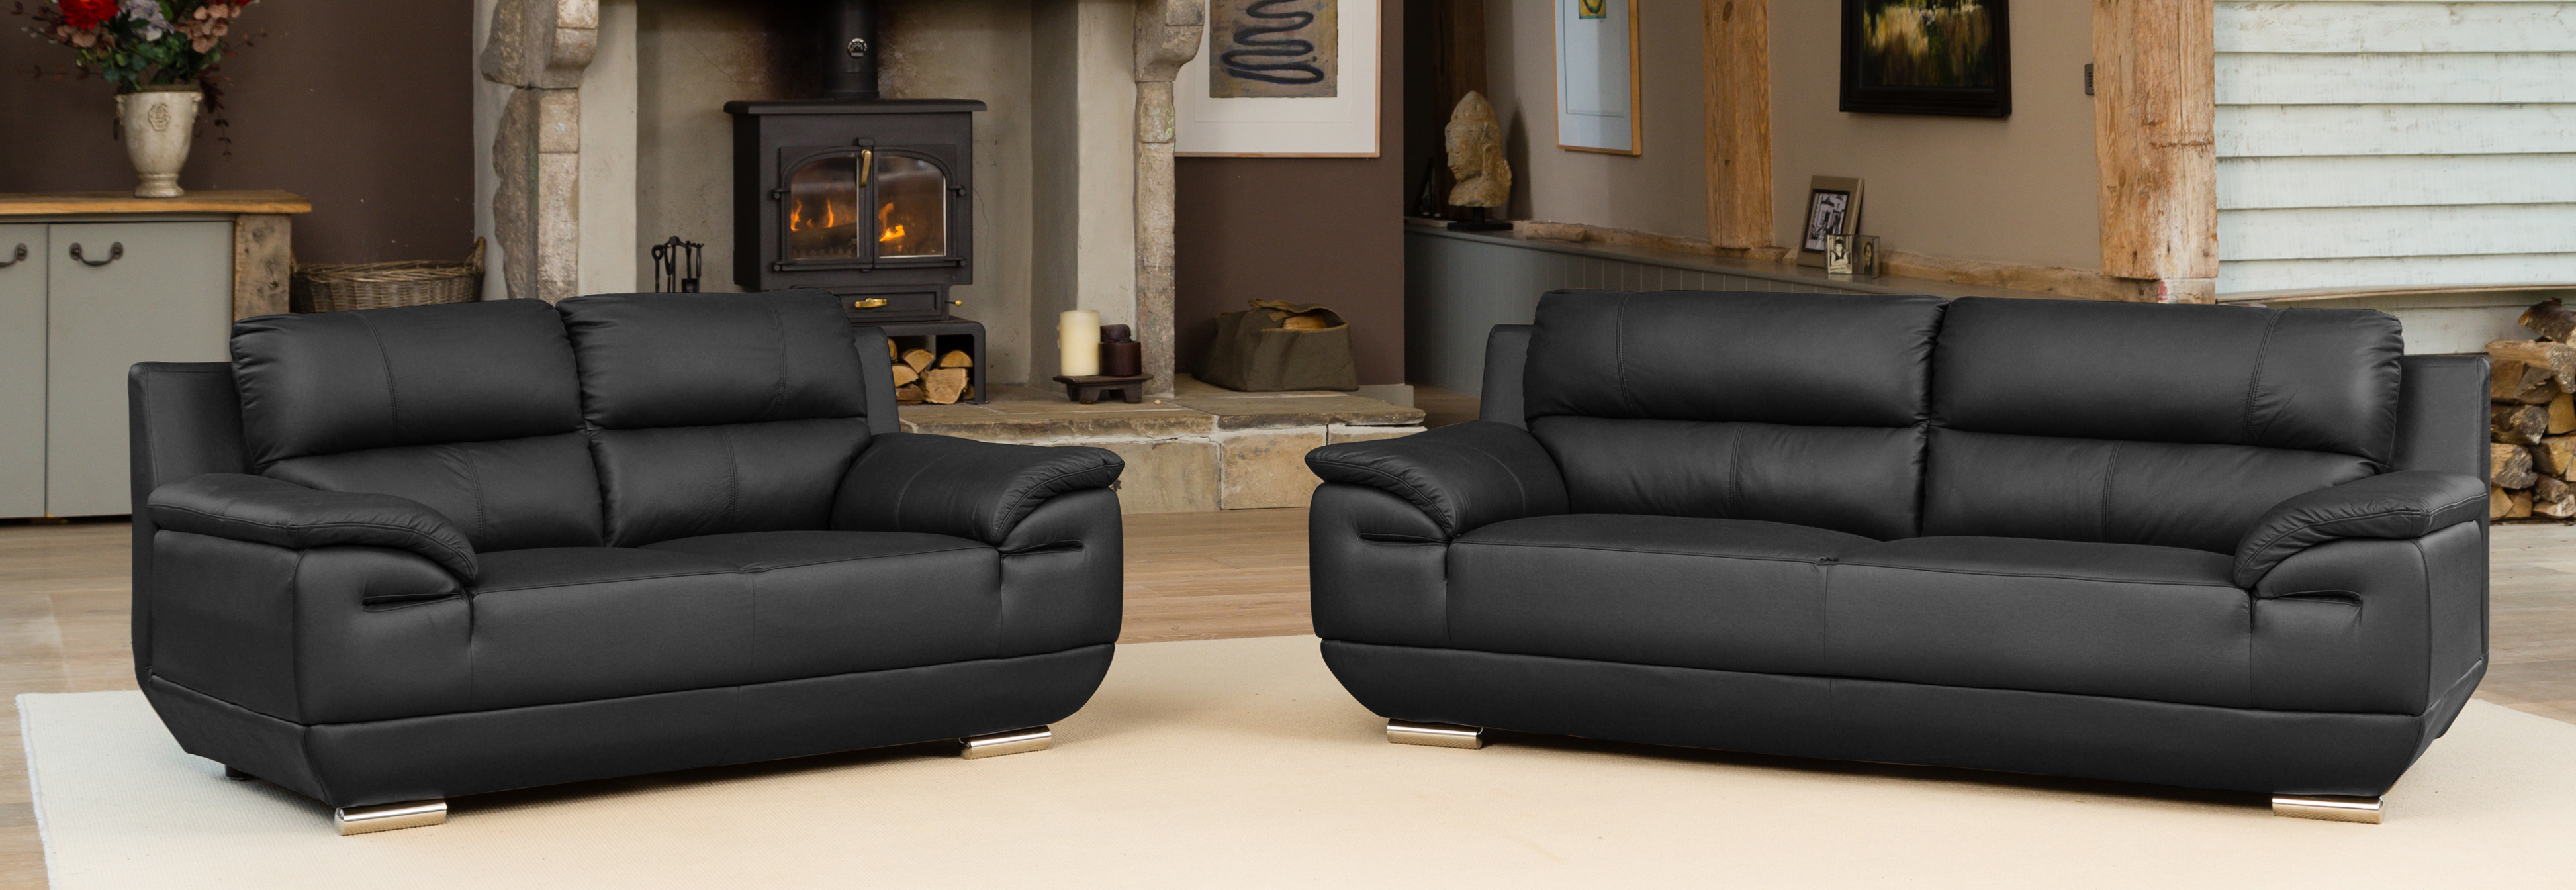 Knighton Suite black